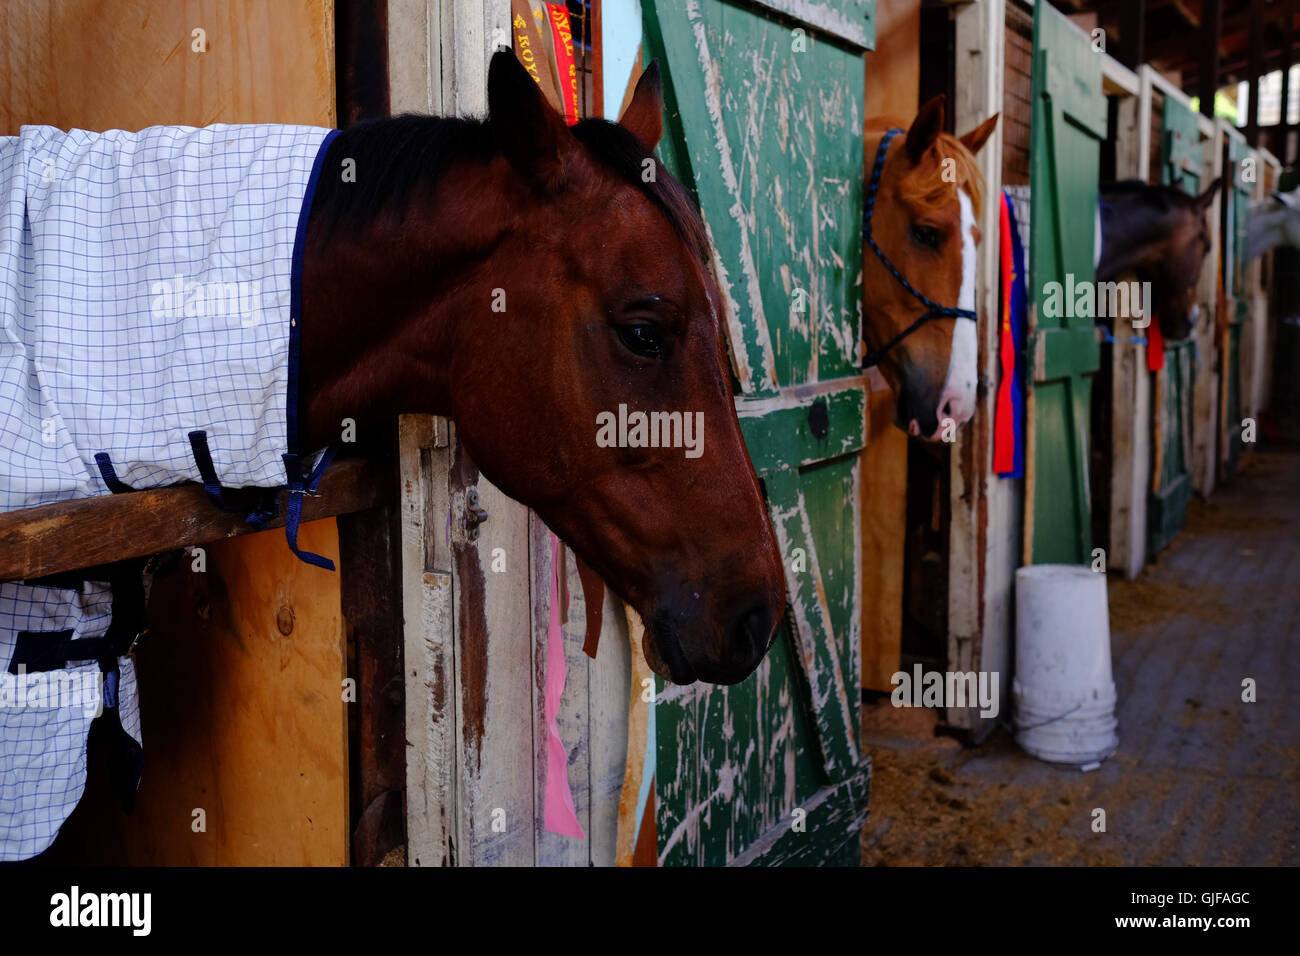 Horses in a stable with green stable doors Stock Photo